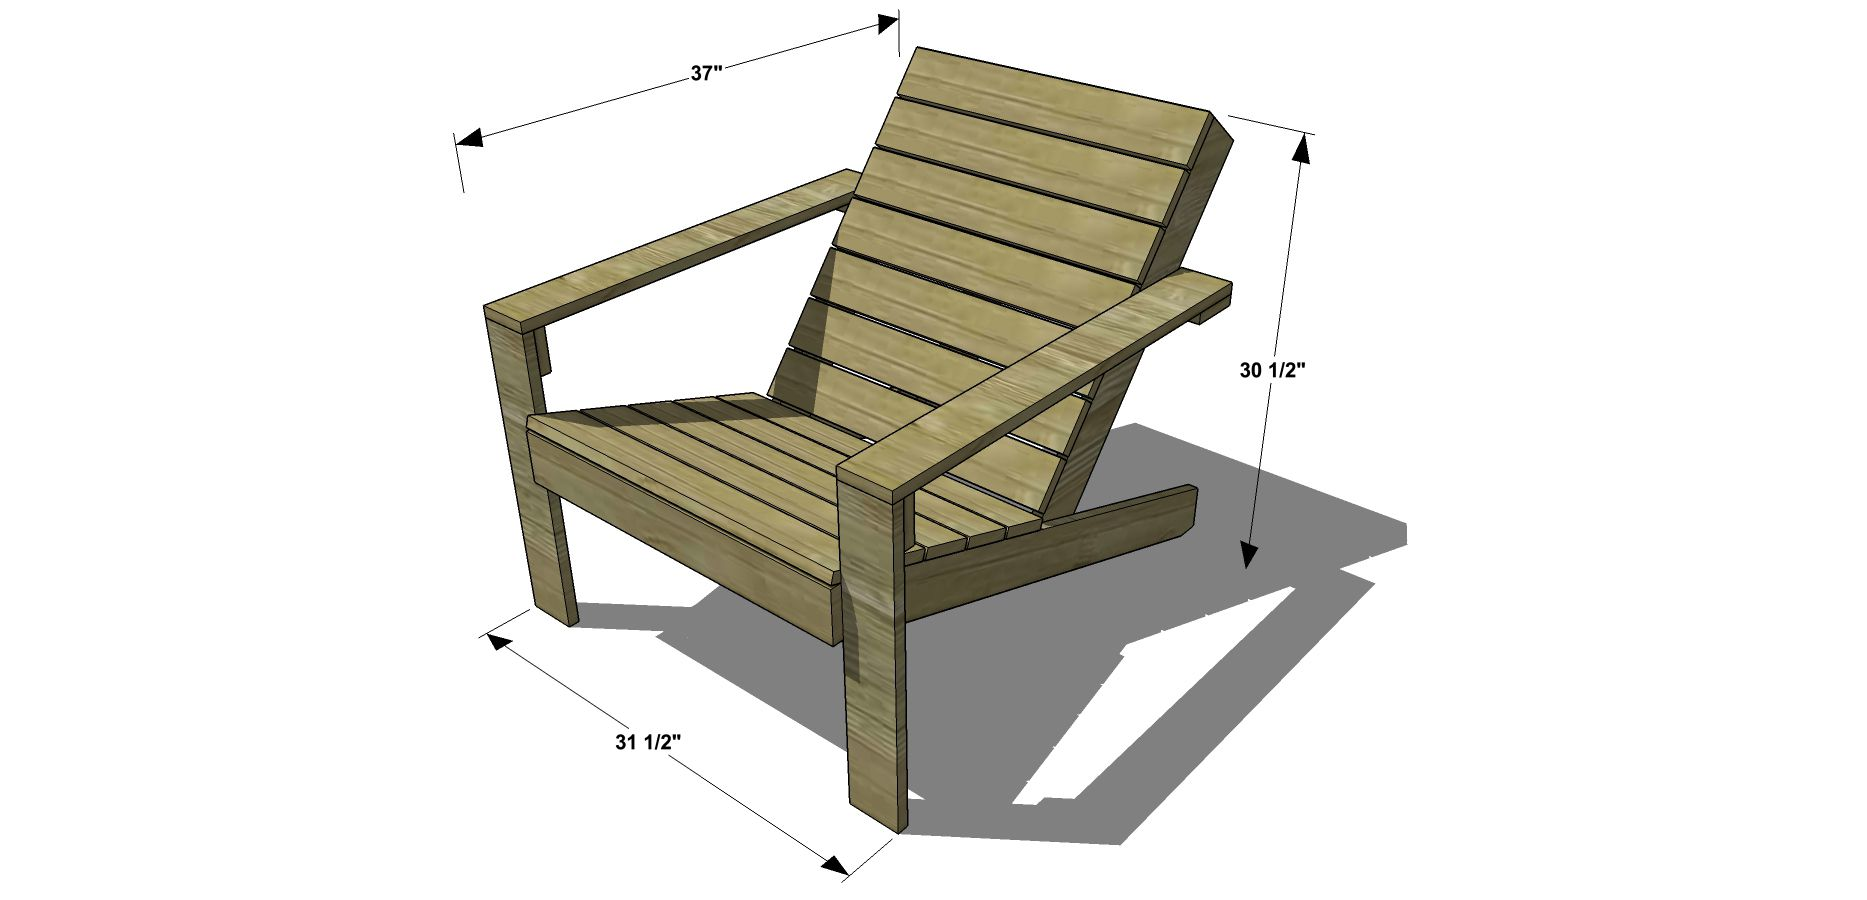 Dimensions For Free DIY Furniture Plans // How To Build An Outdoor Modern Adirondack  Chair